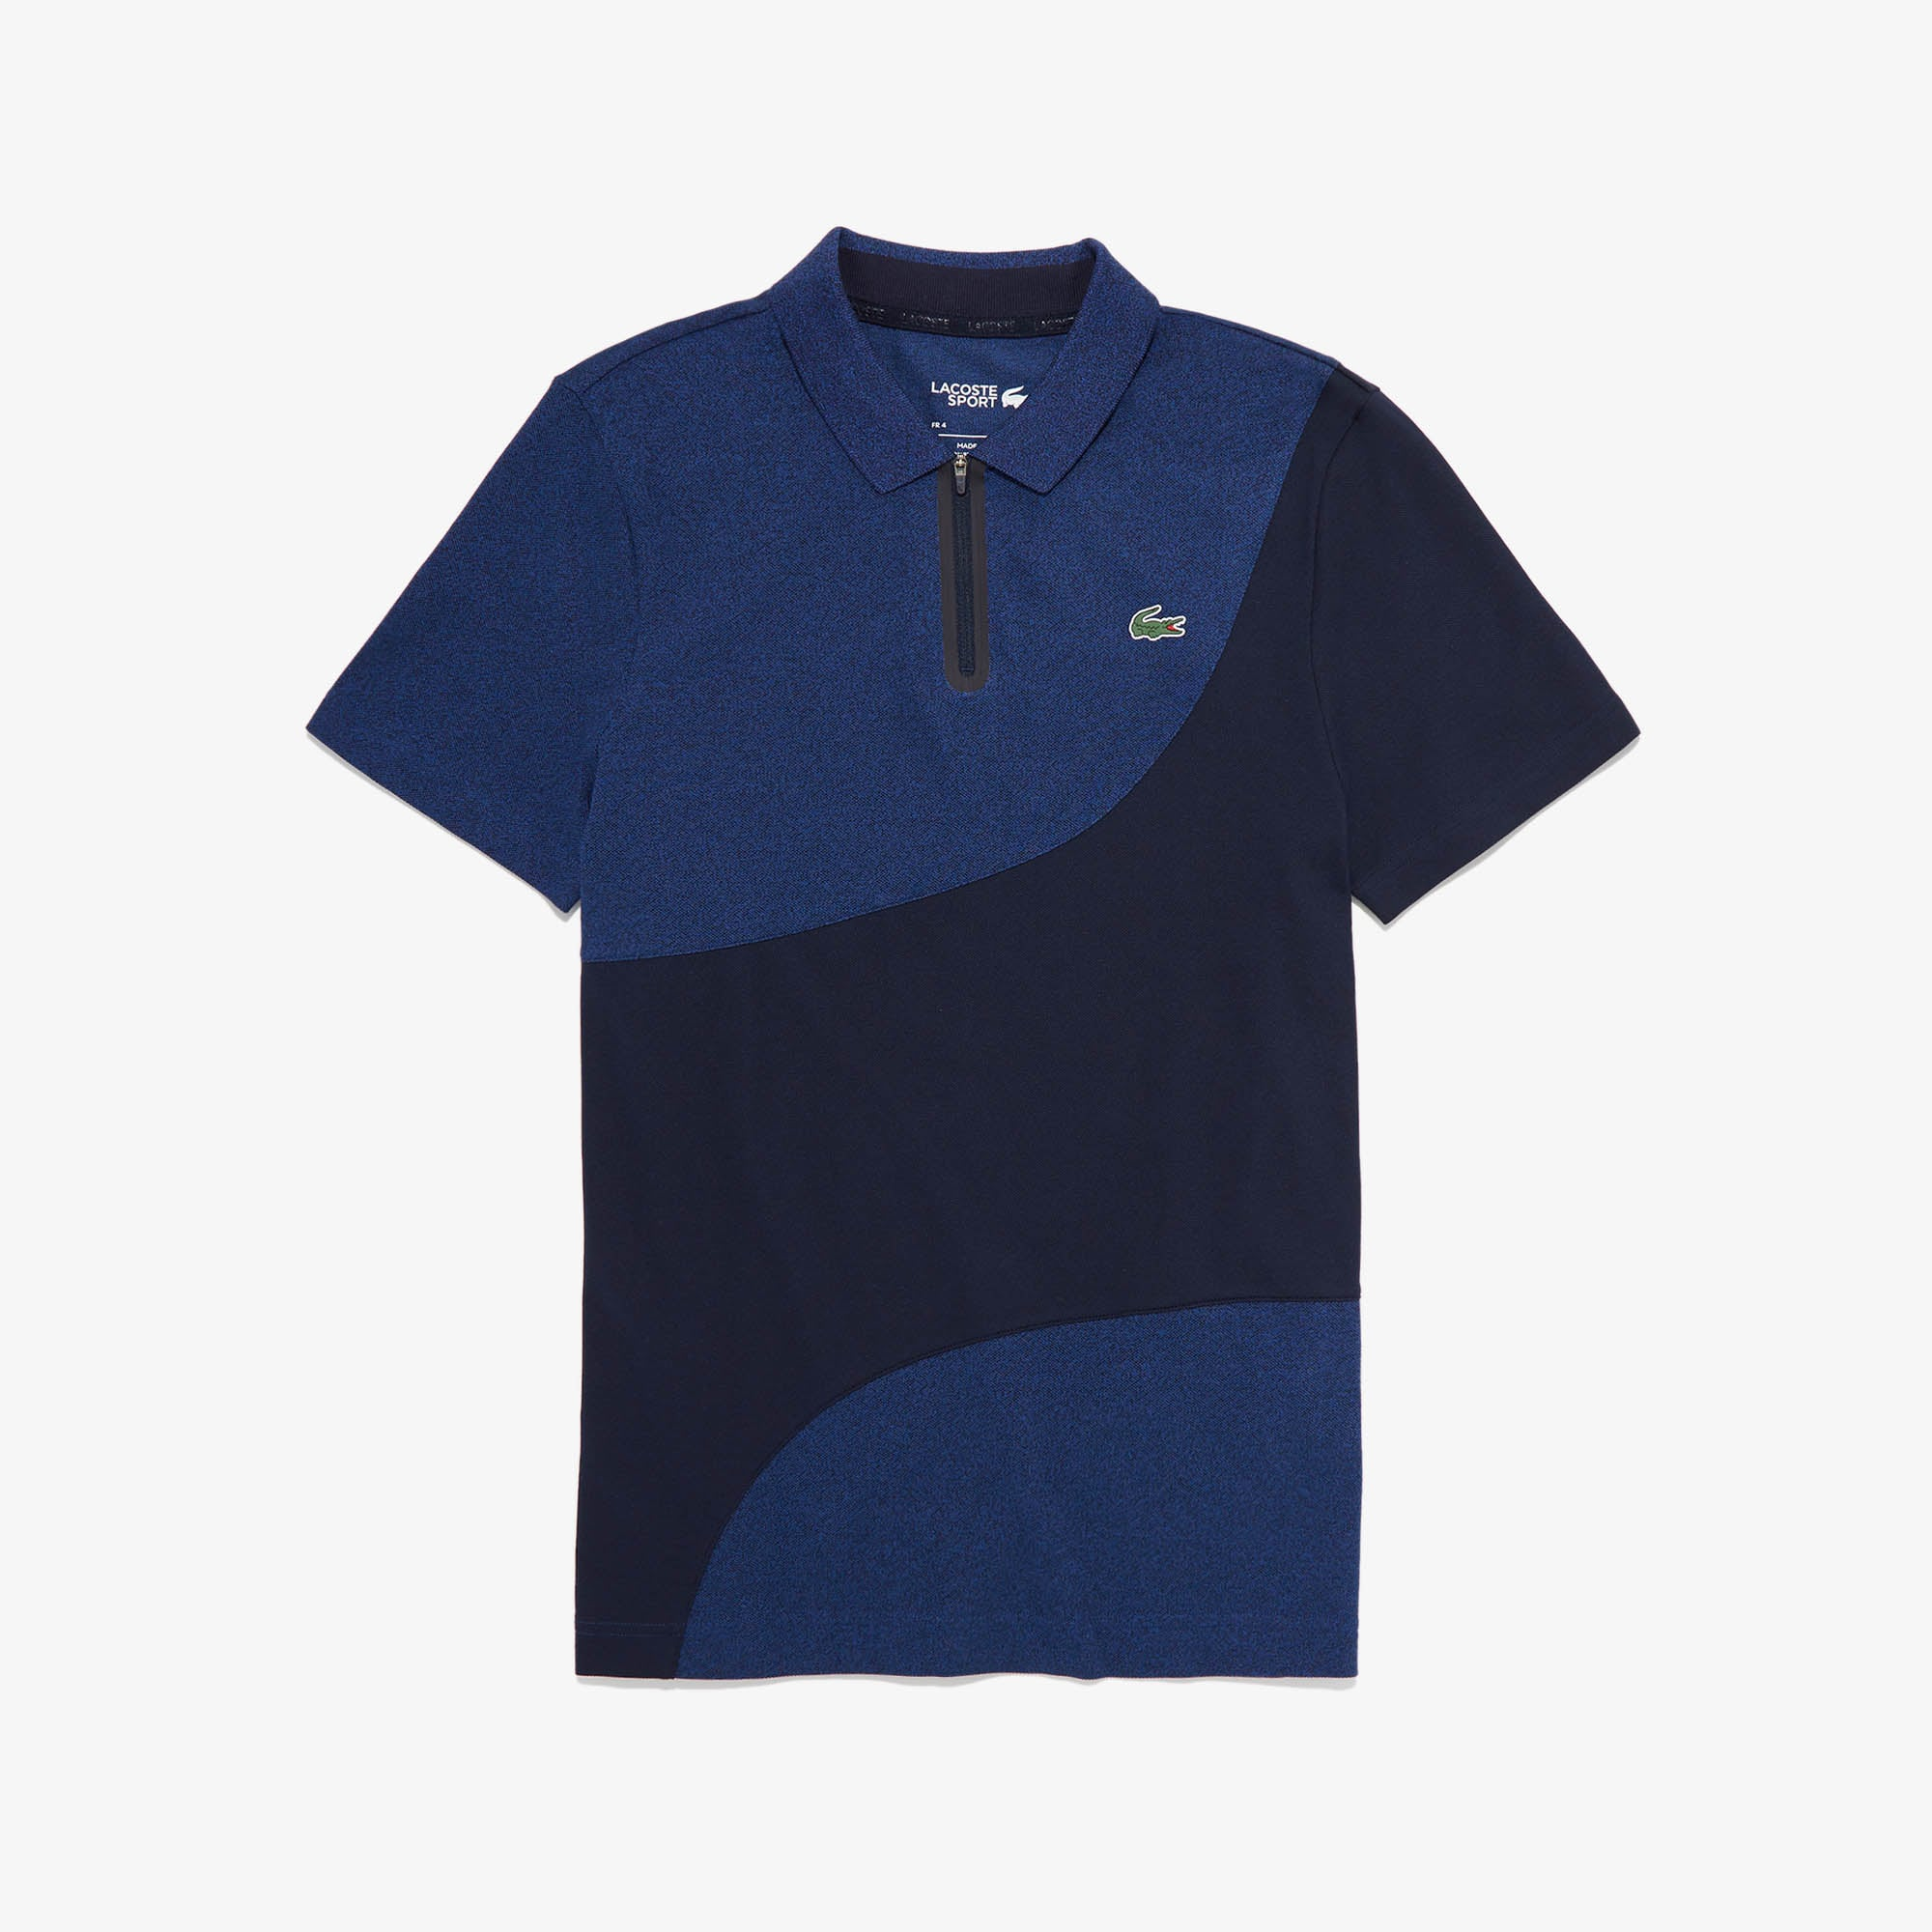 Lacoste Tops Men's SPORT Color-Blocked Breathable Piqué Zip Golf Polo Shirt